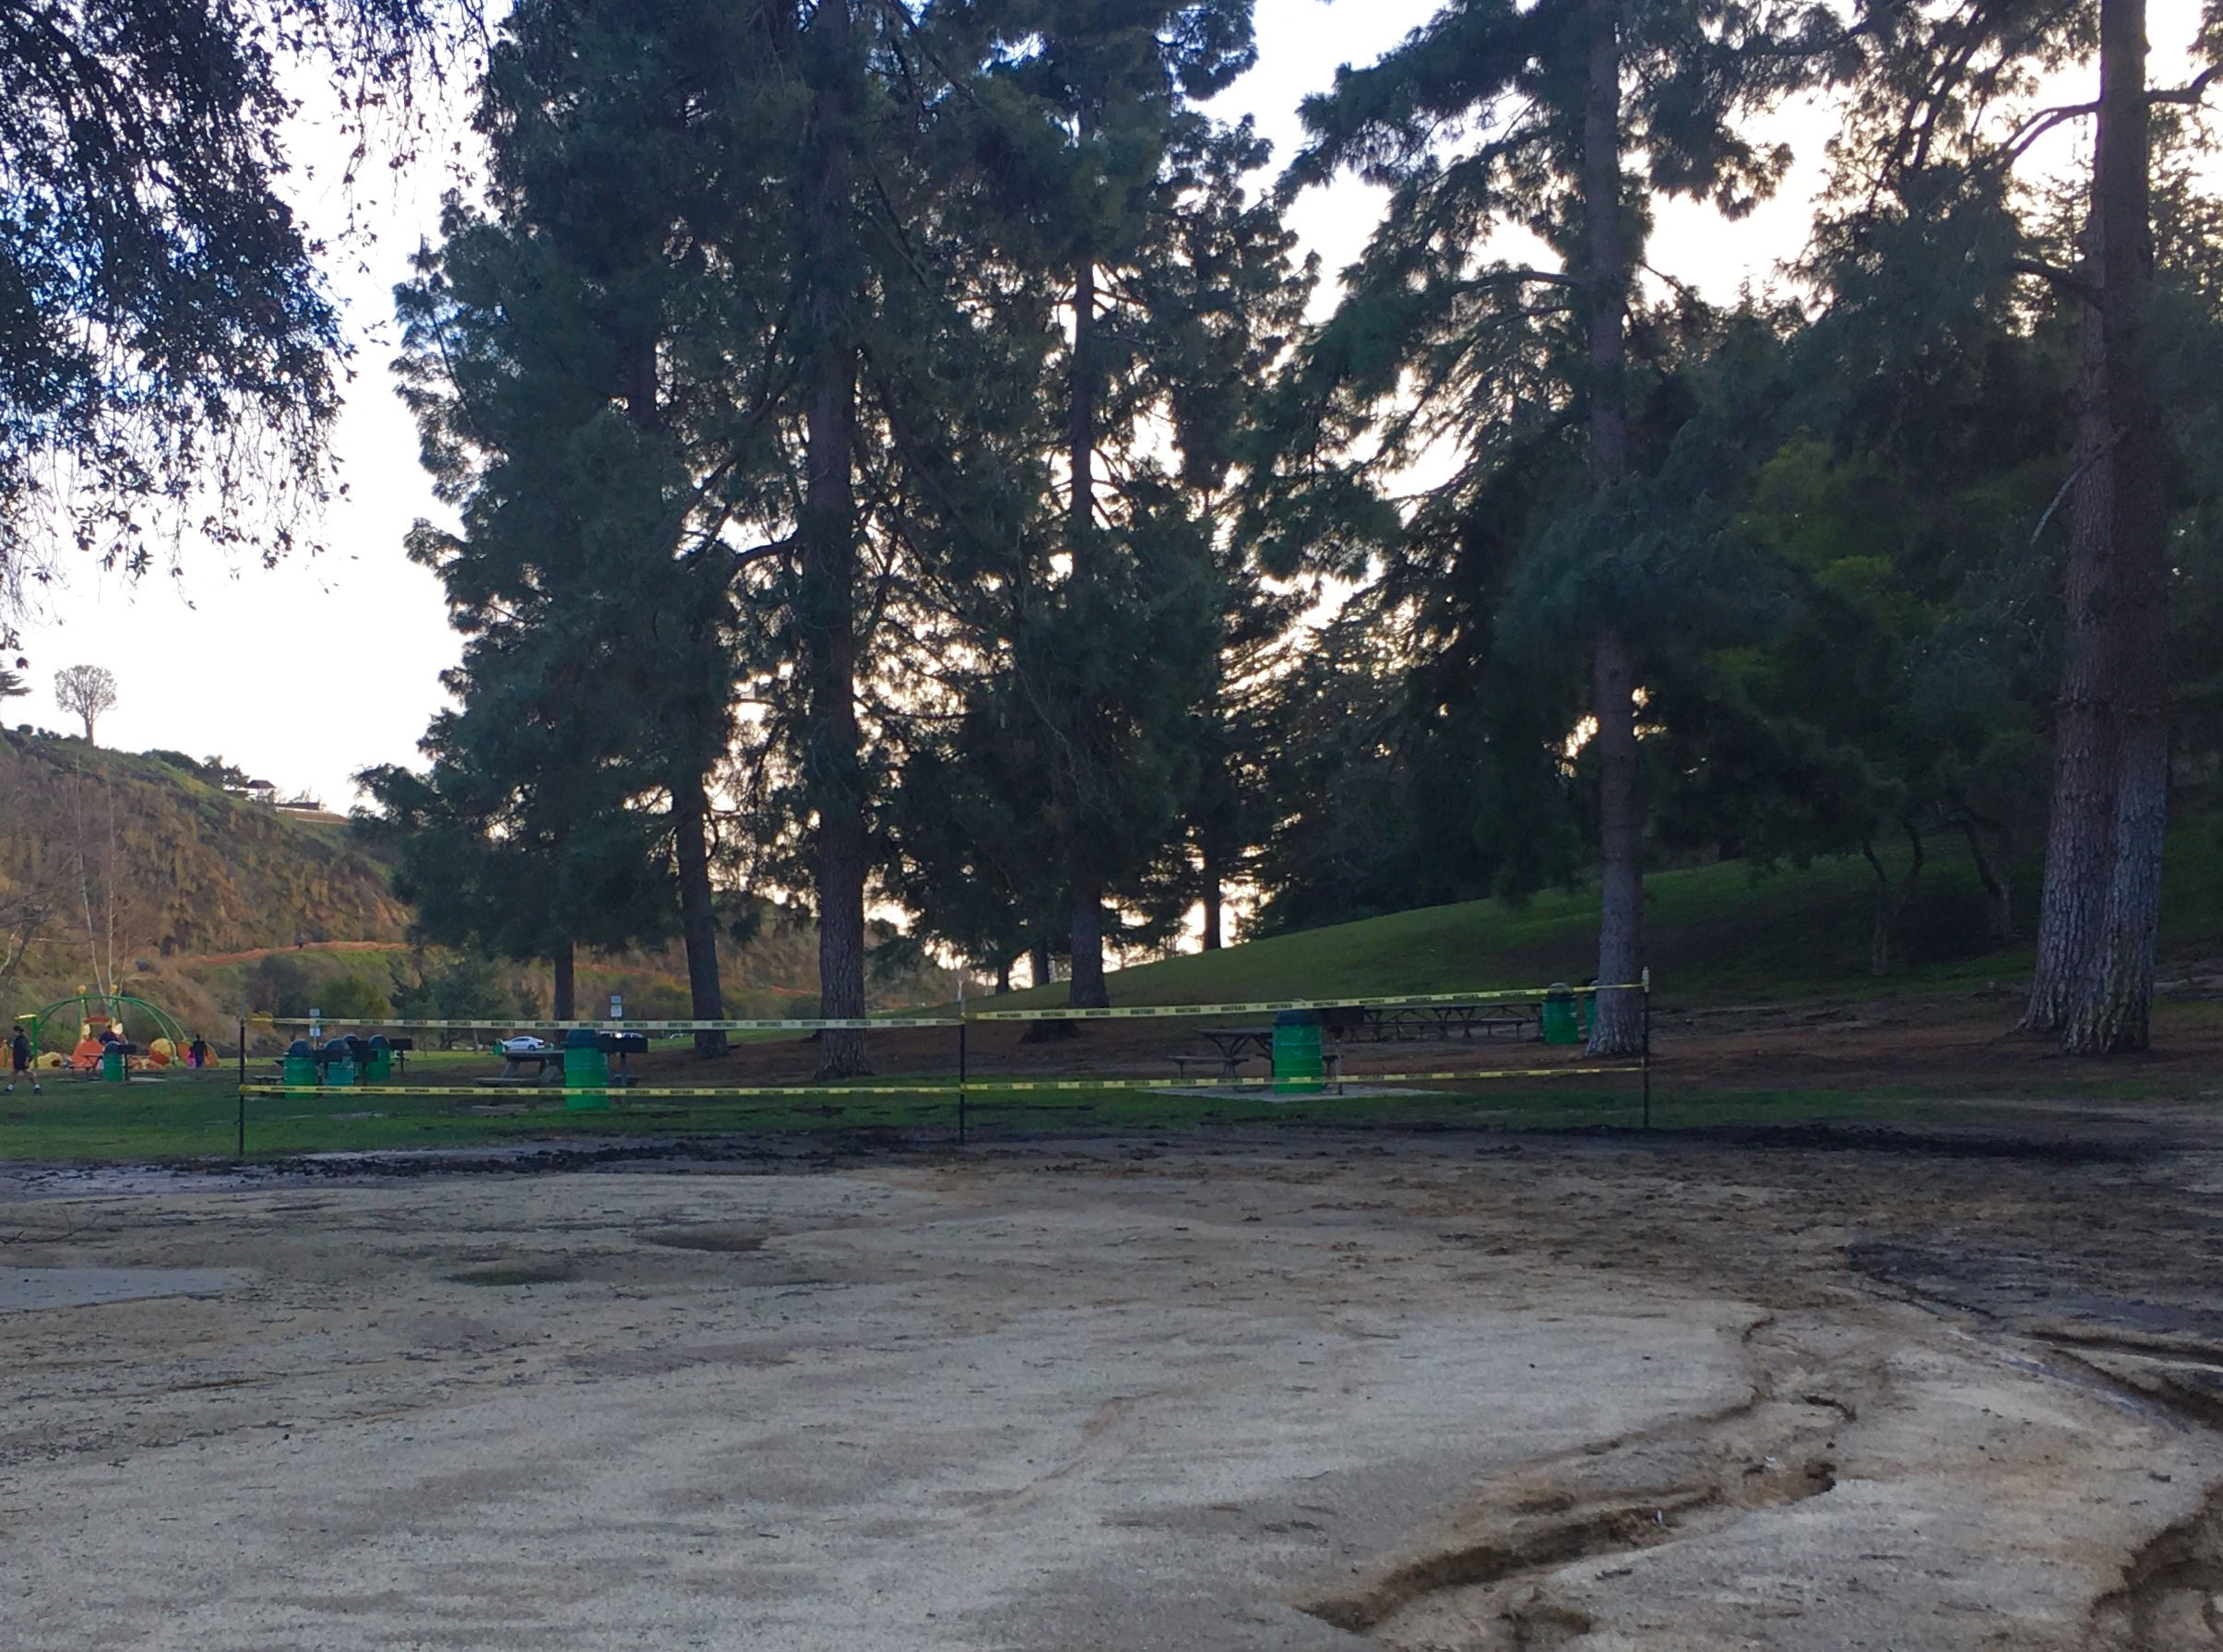 At Arroyo Verde Park in Ventura, an area that will soon be home to a playground is next to another play structure.